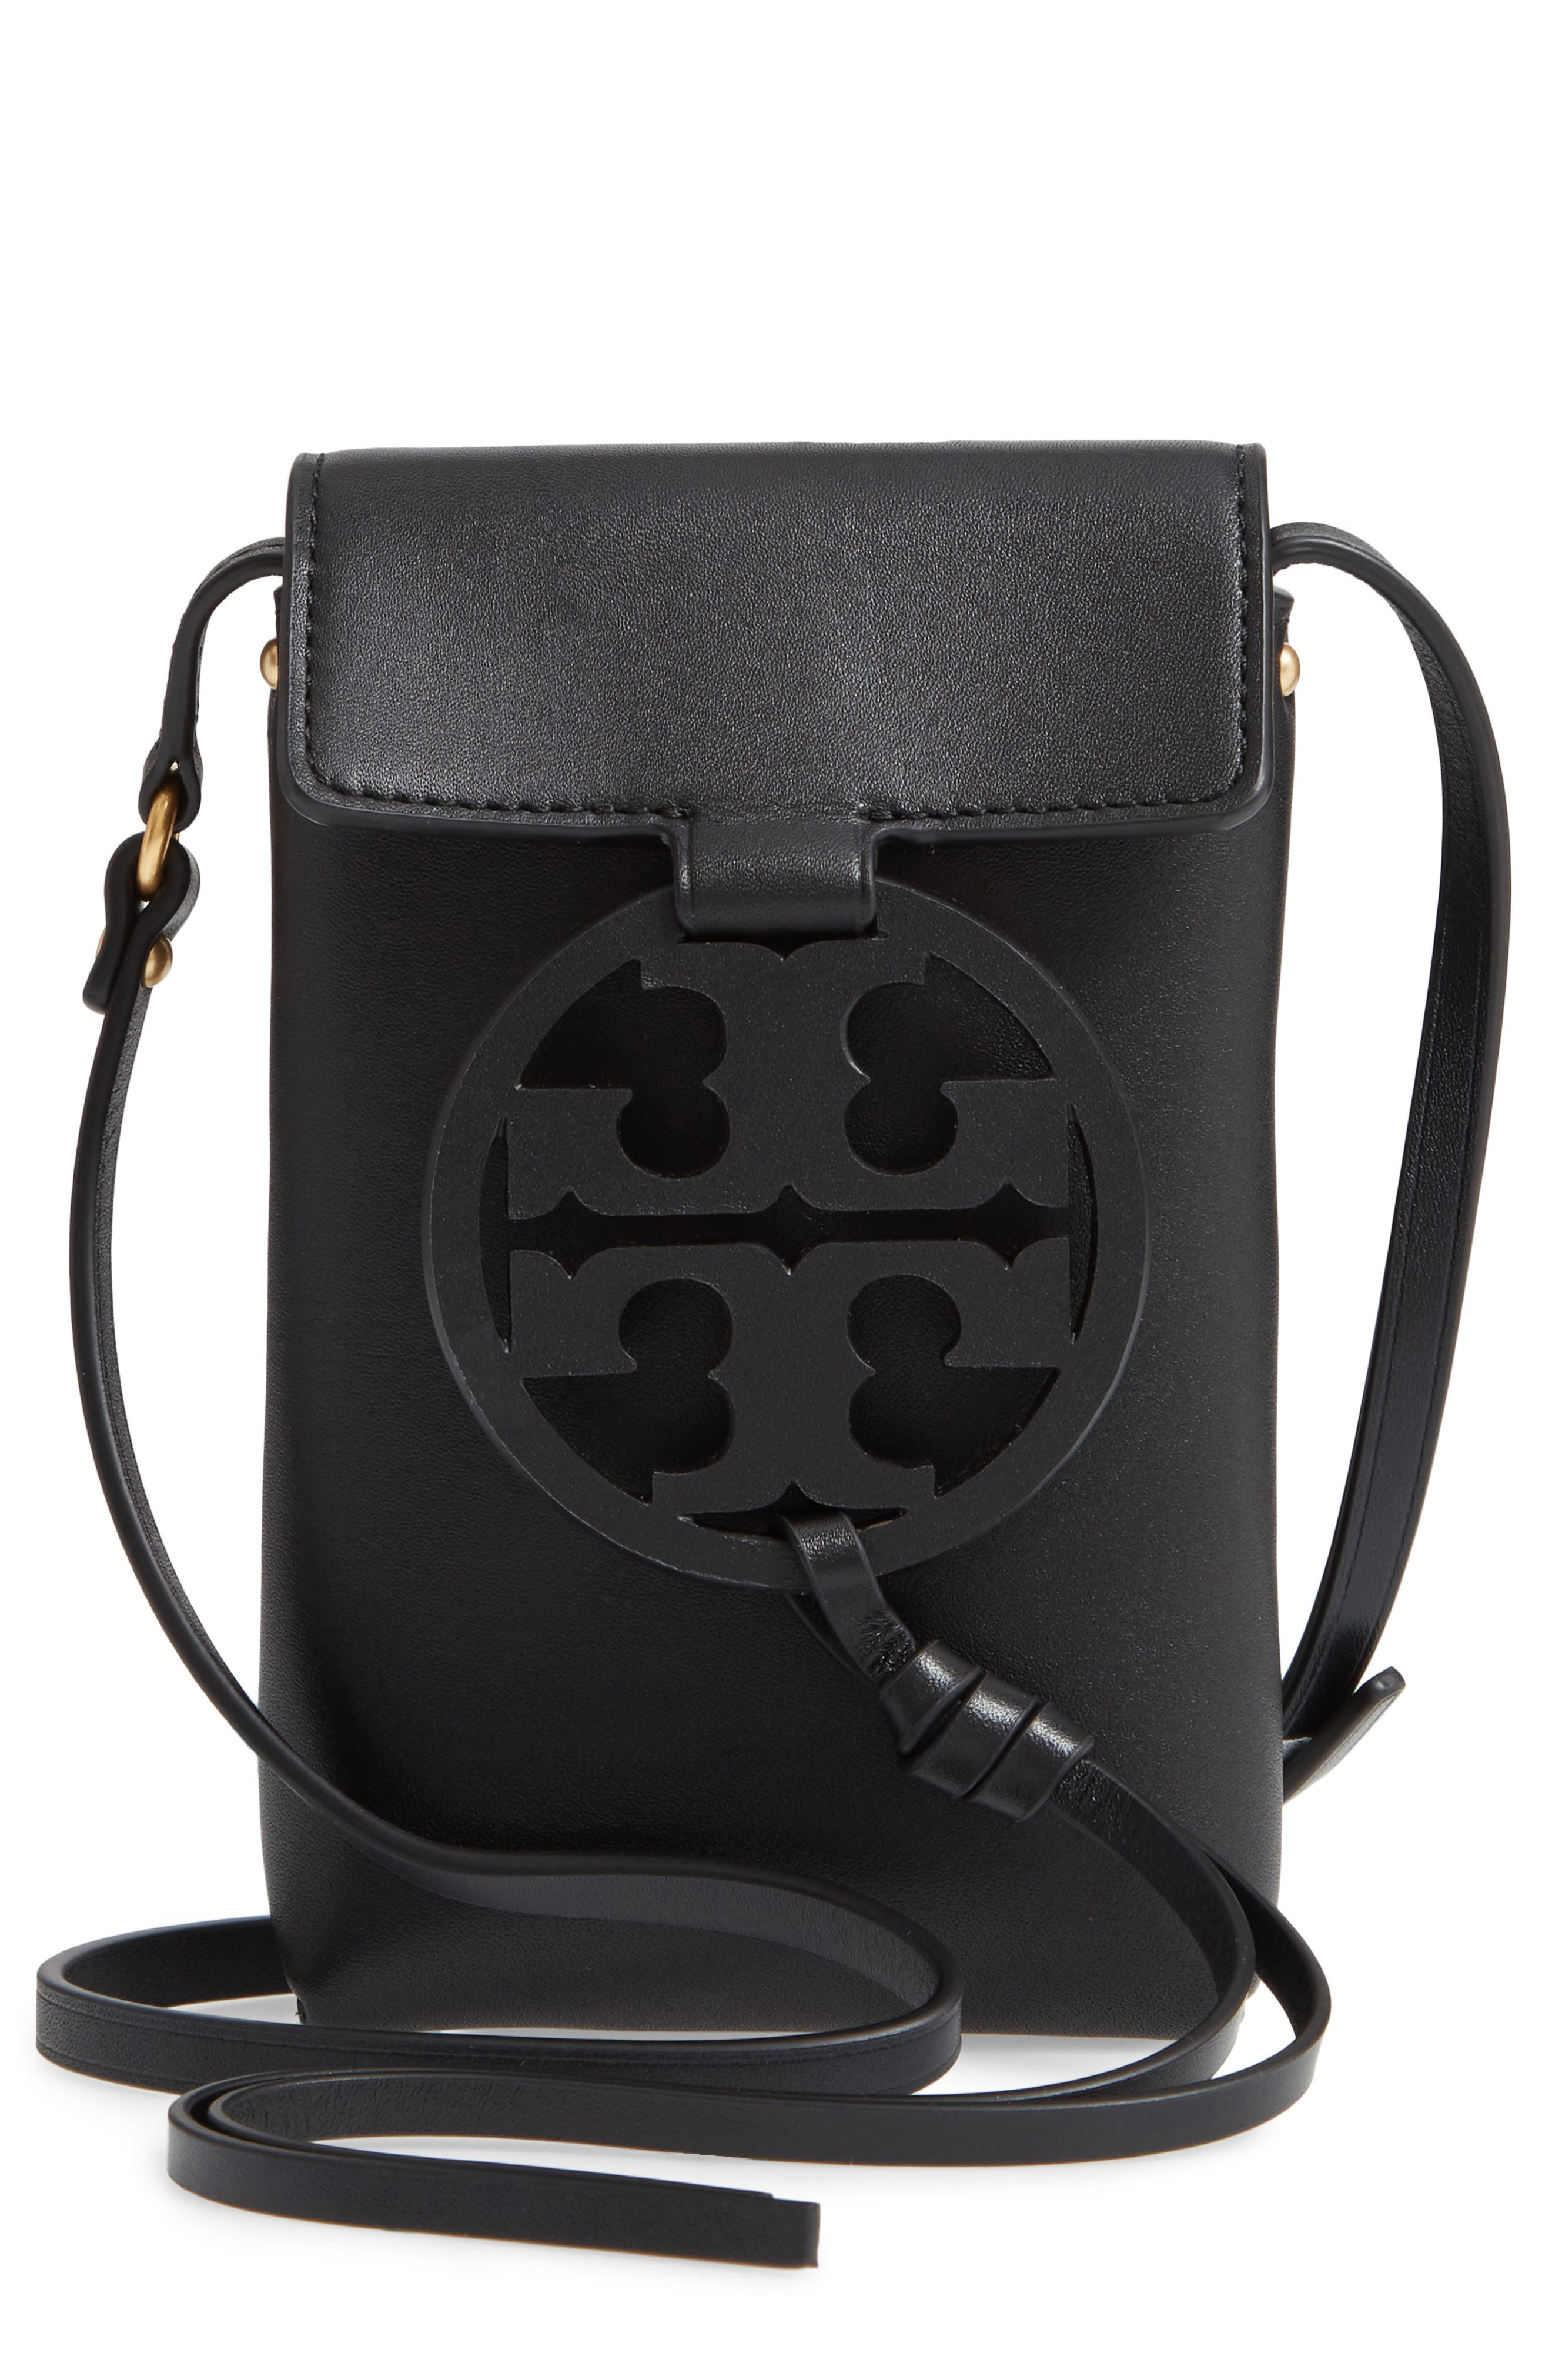 TORY BURCH Miller Leather Phone Crossbody Bag, Main, color, BLACK